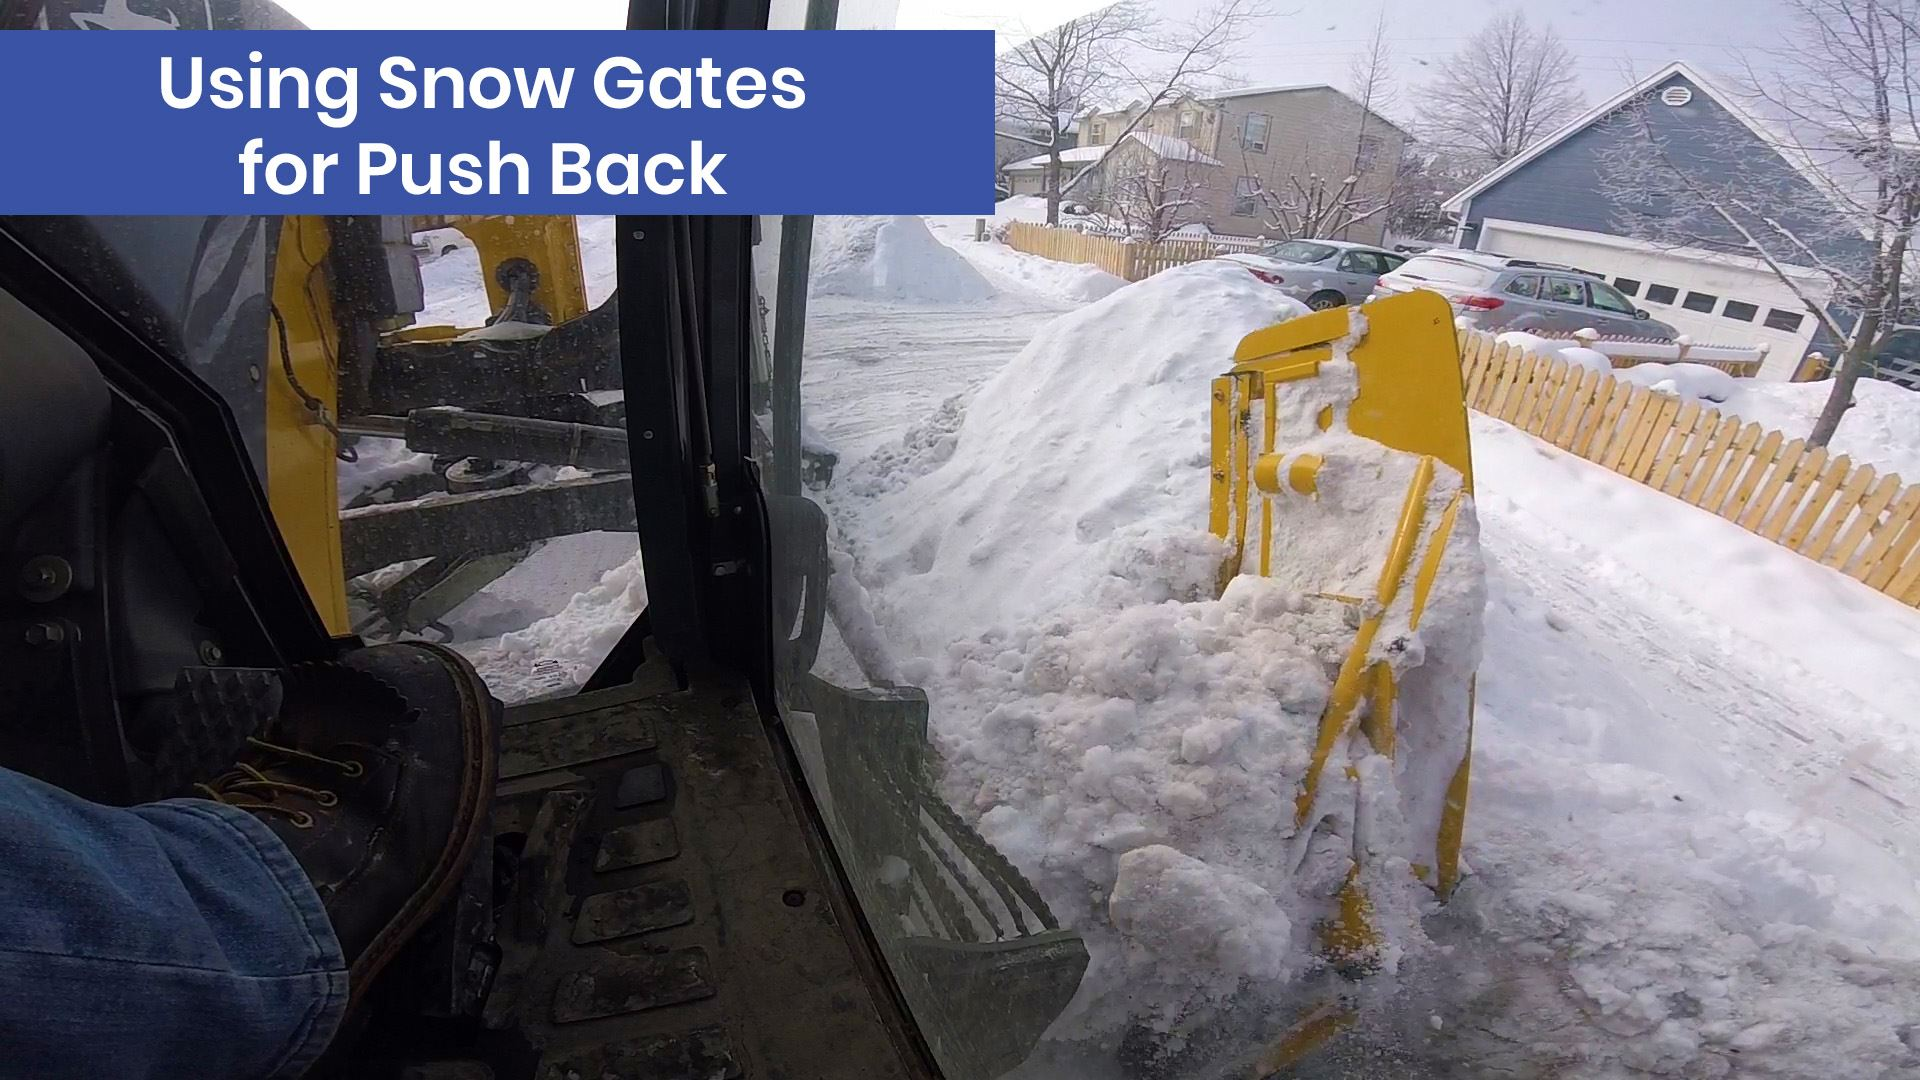 A snow gate operates on heavy equipment